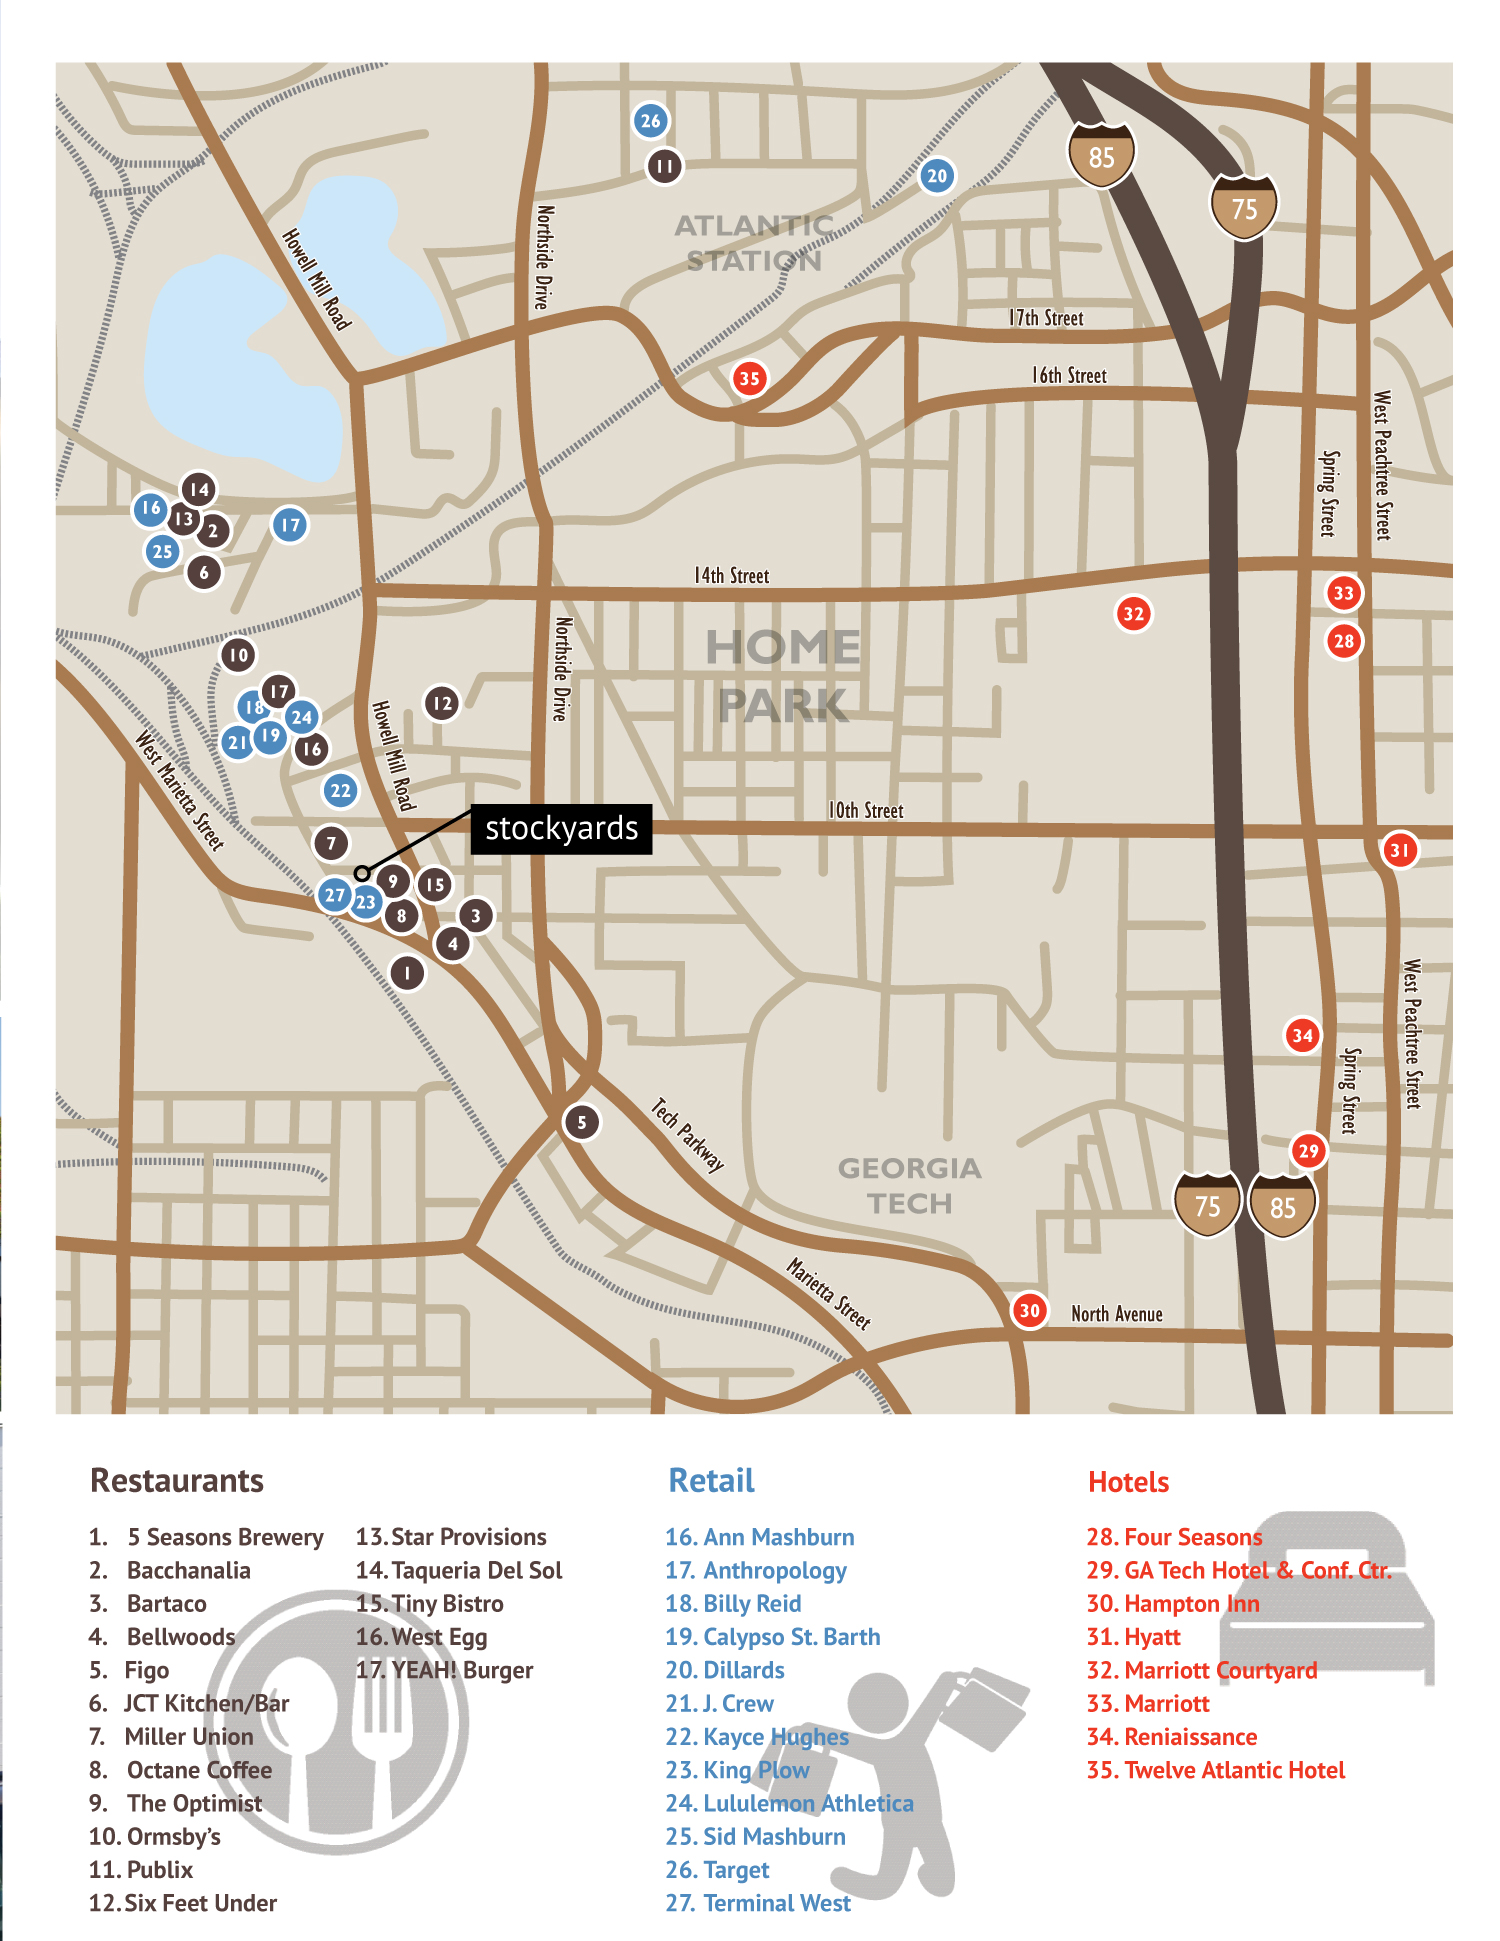 There are several restaurants, shopping, and places to stay near Stockyards! Click to view larger map.